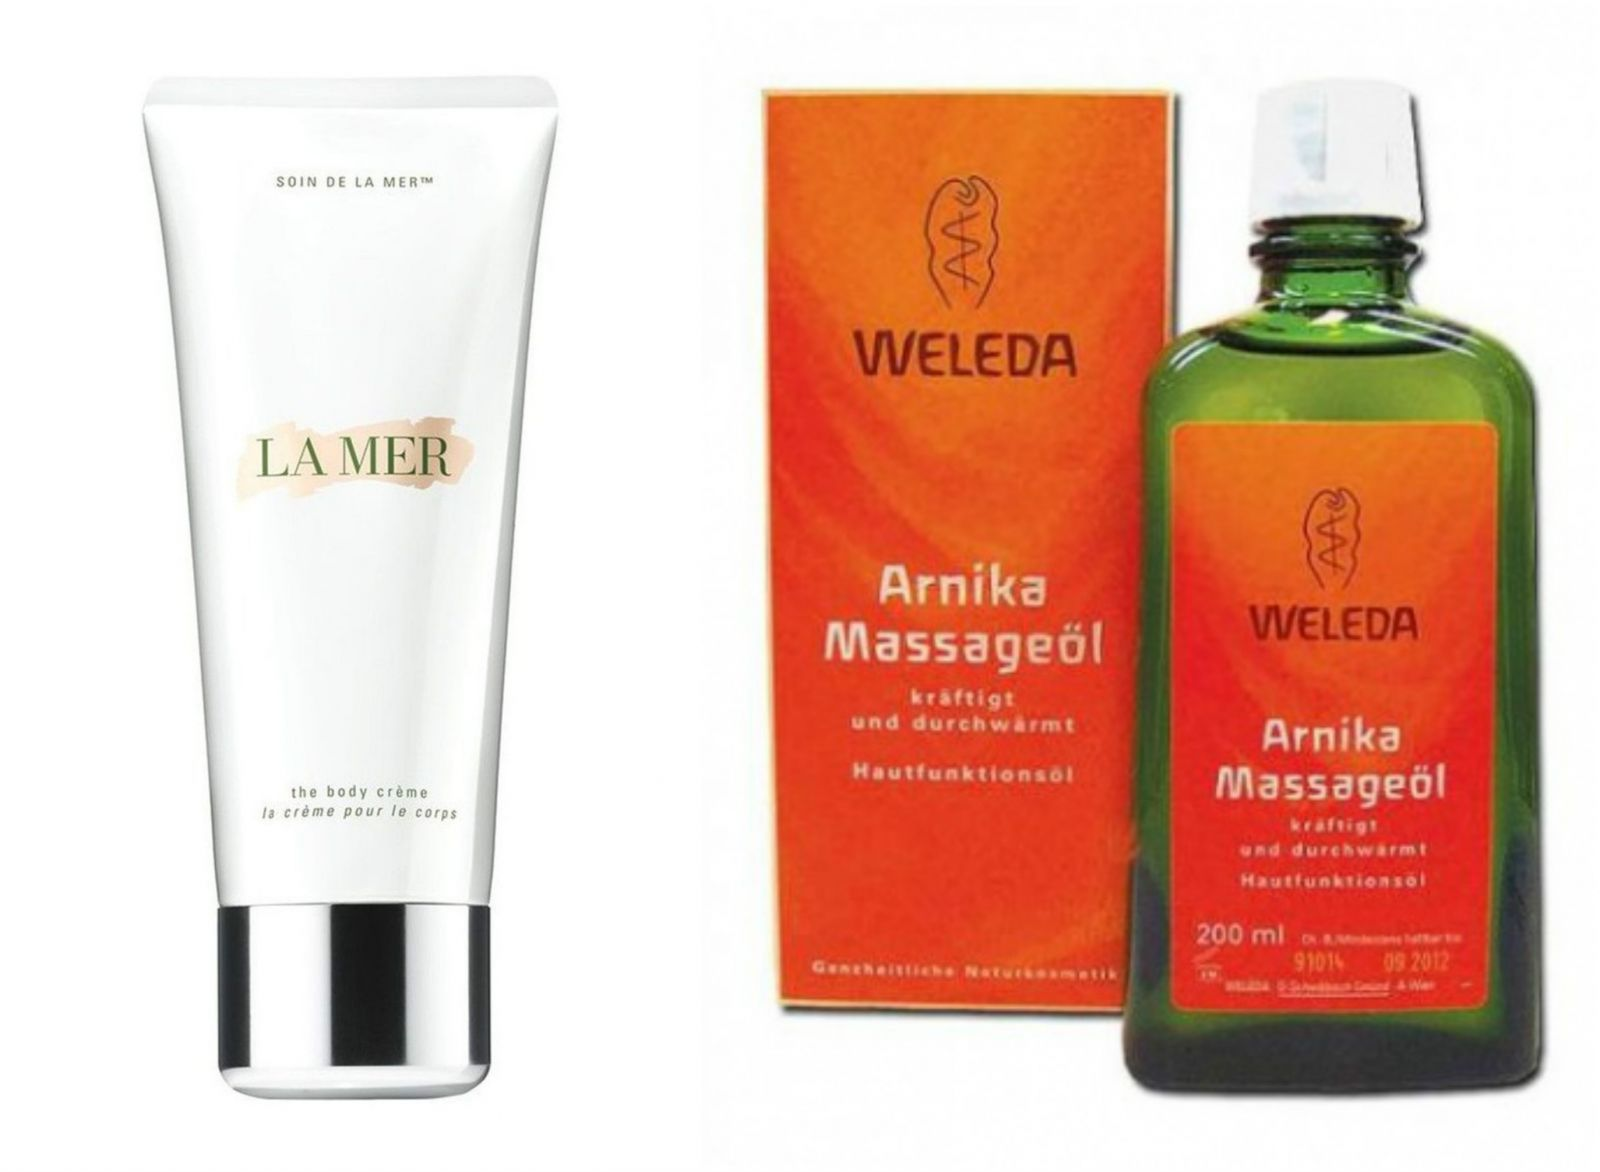 La Mer The Body Creme и Массажное масло Арника Weleda Arnika Massageol